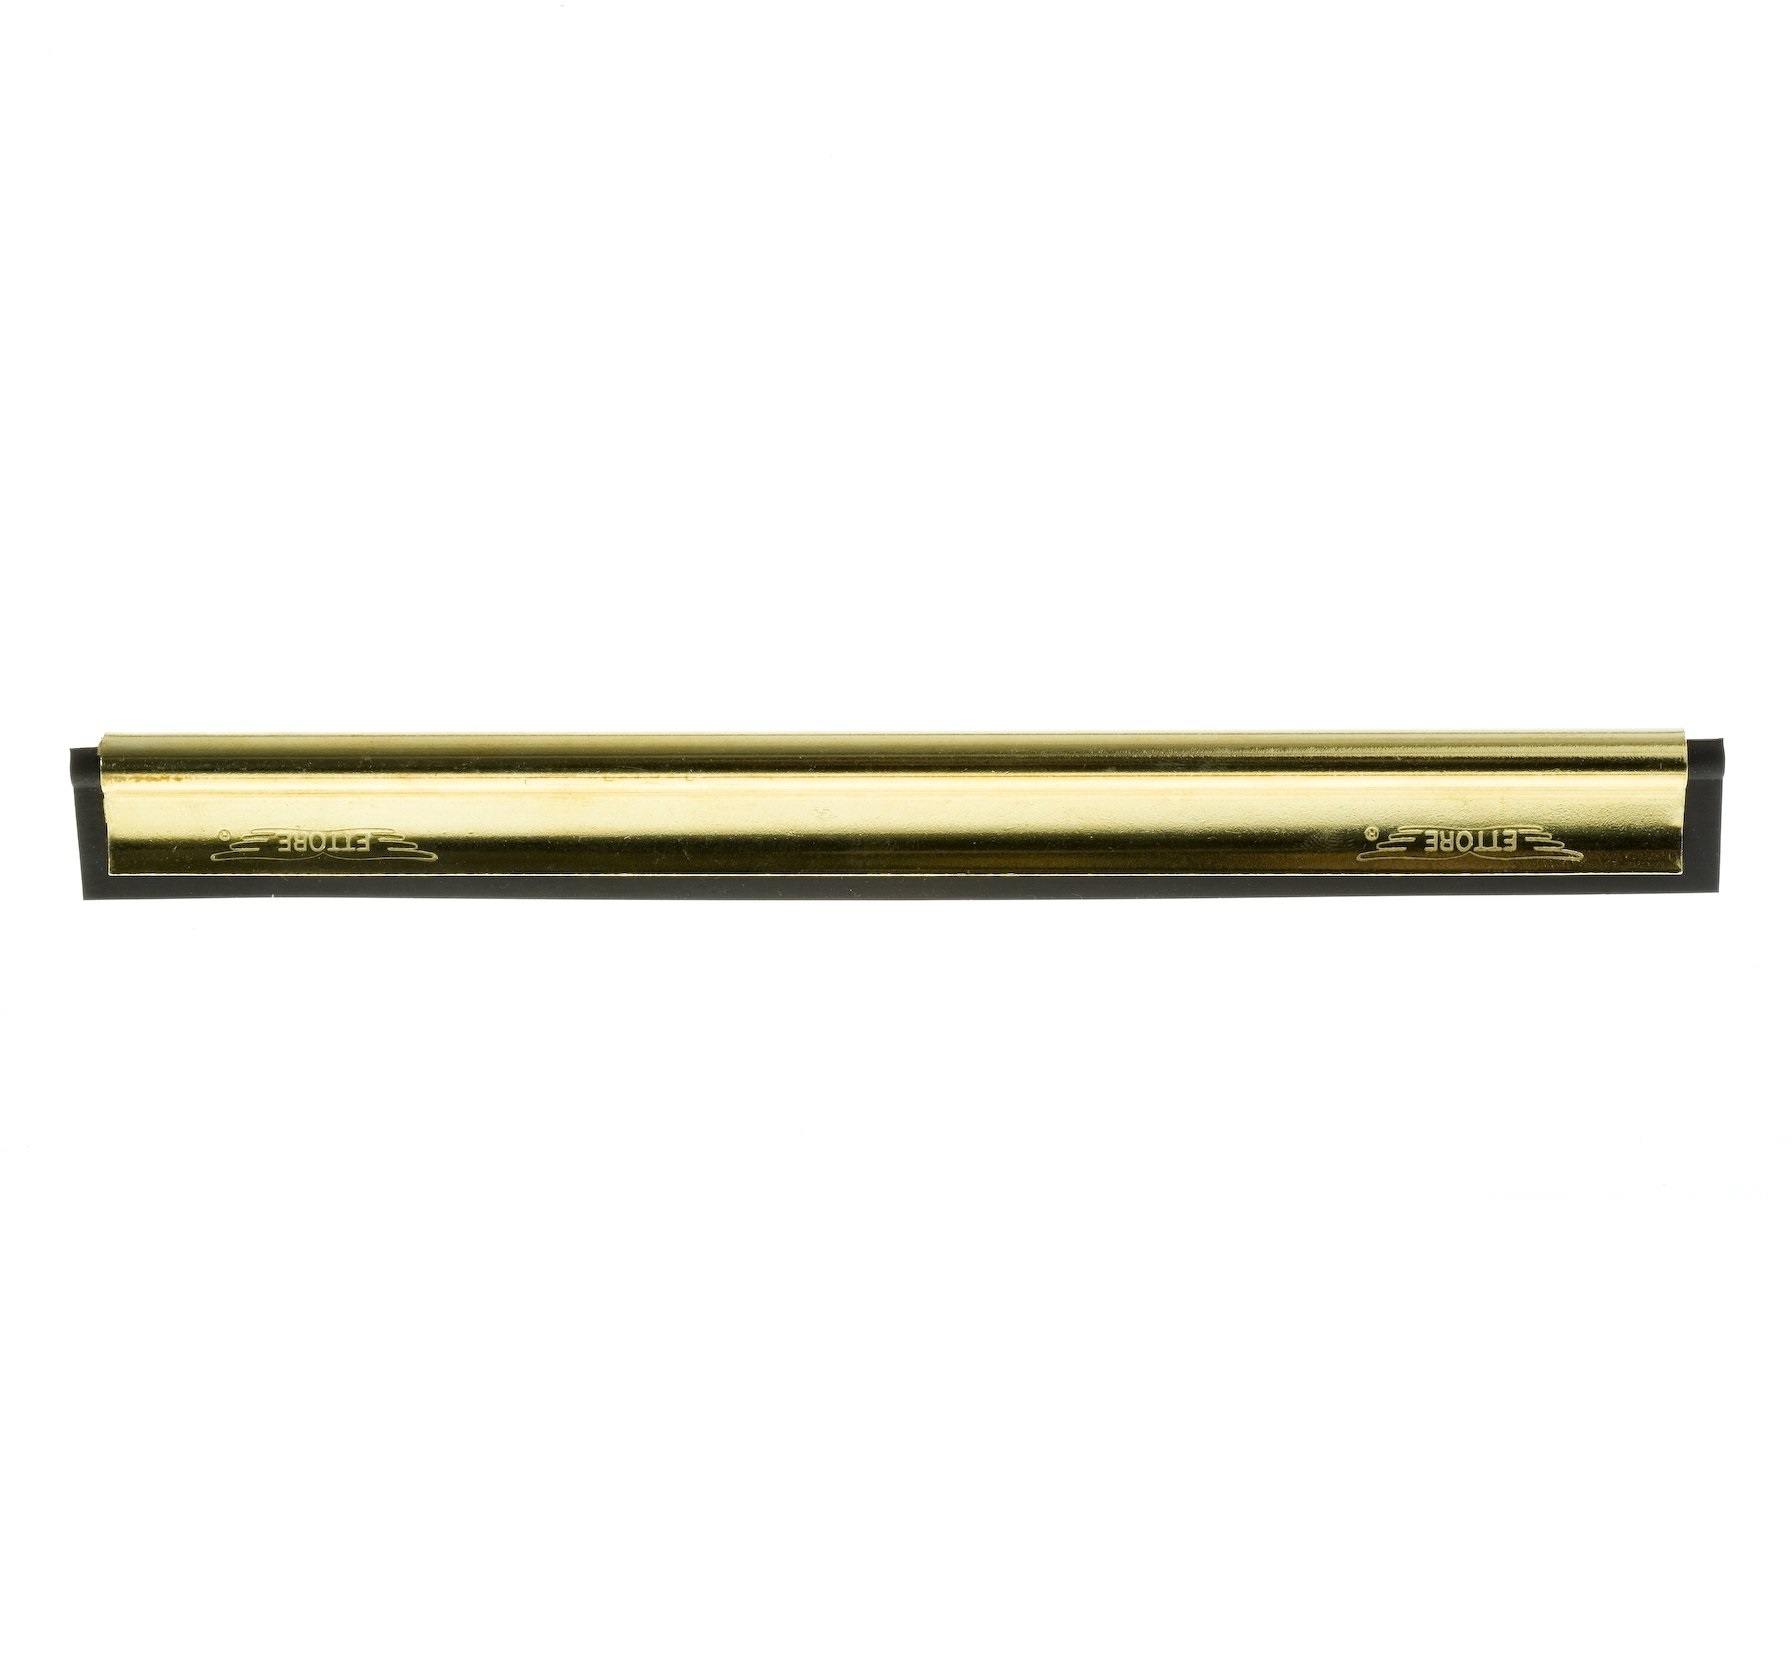 Ettore-Master-Brass-Channel---Rubber-12-inch